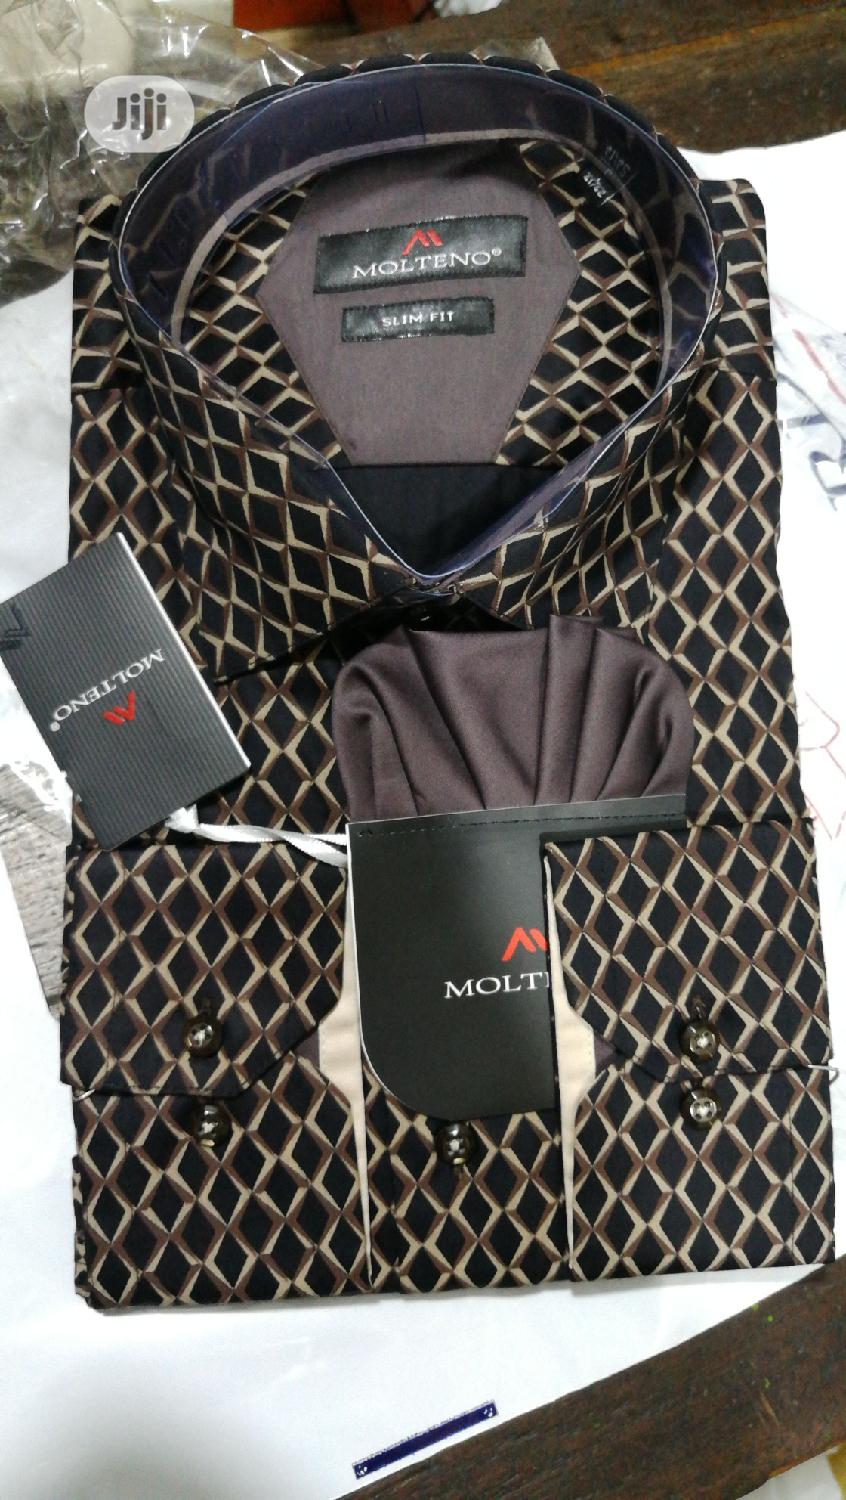 Archive: Square Designs Turkish Brands Shirts By Molteno